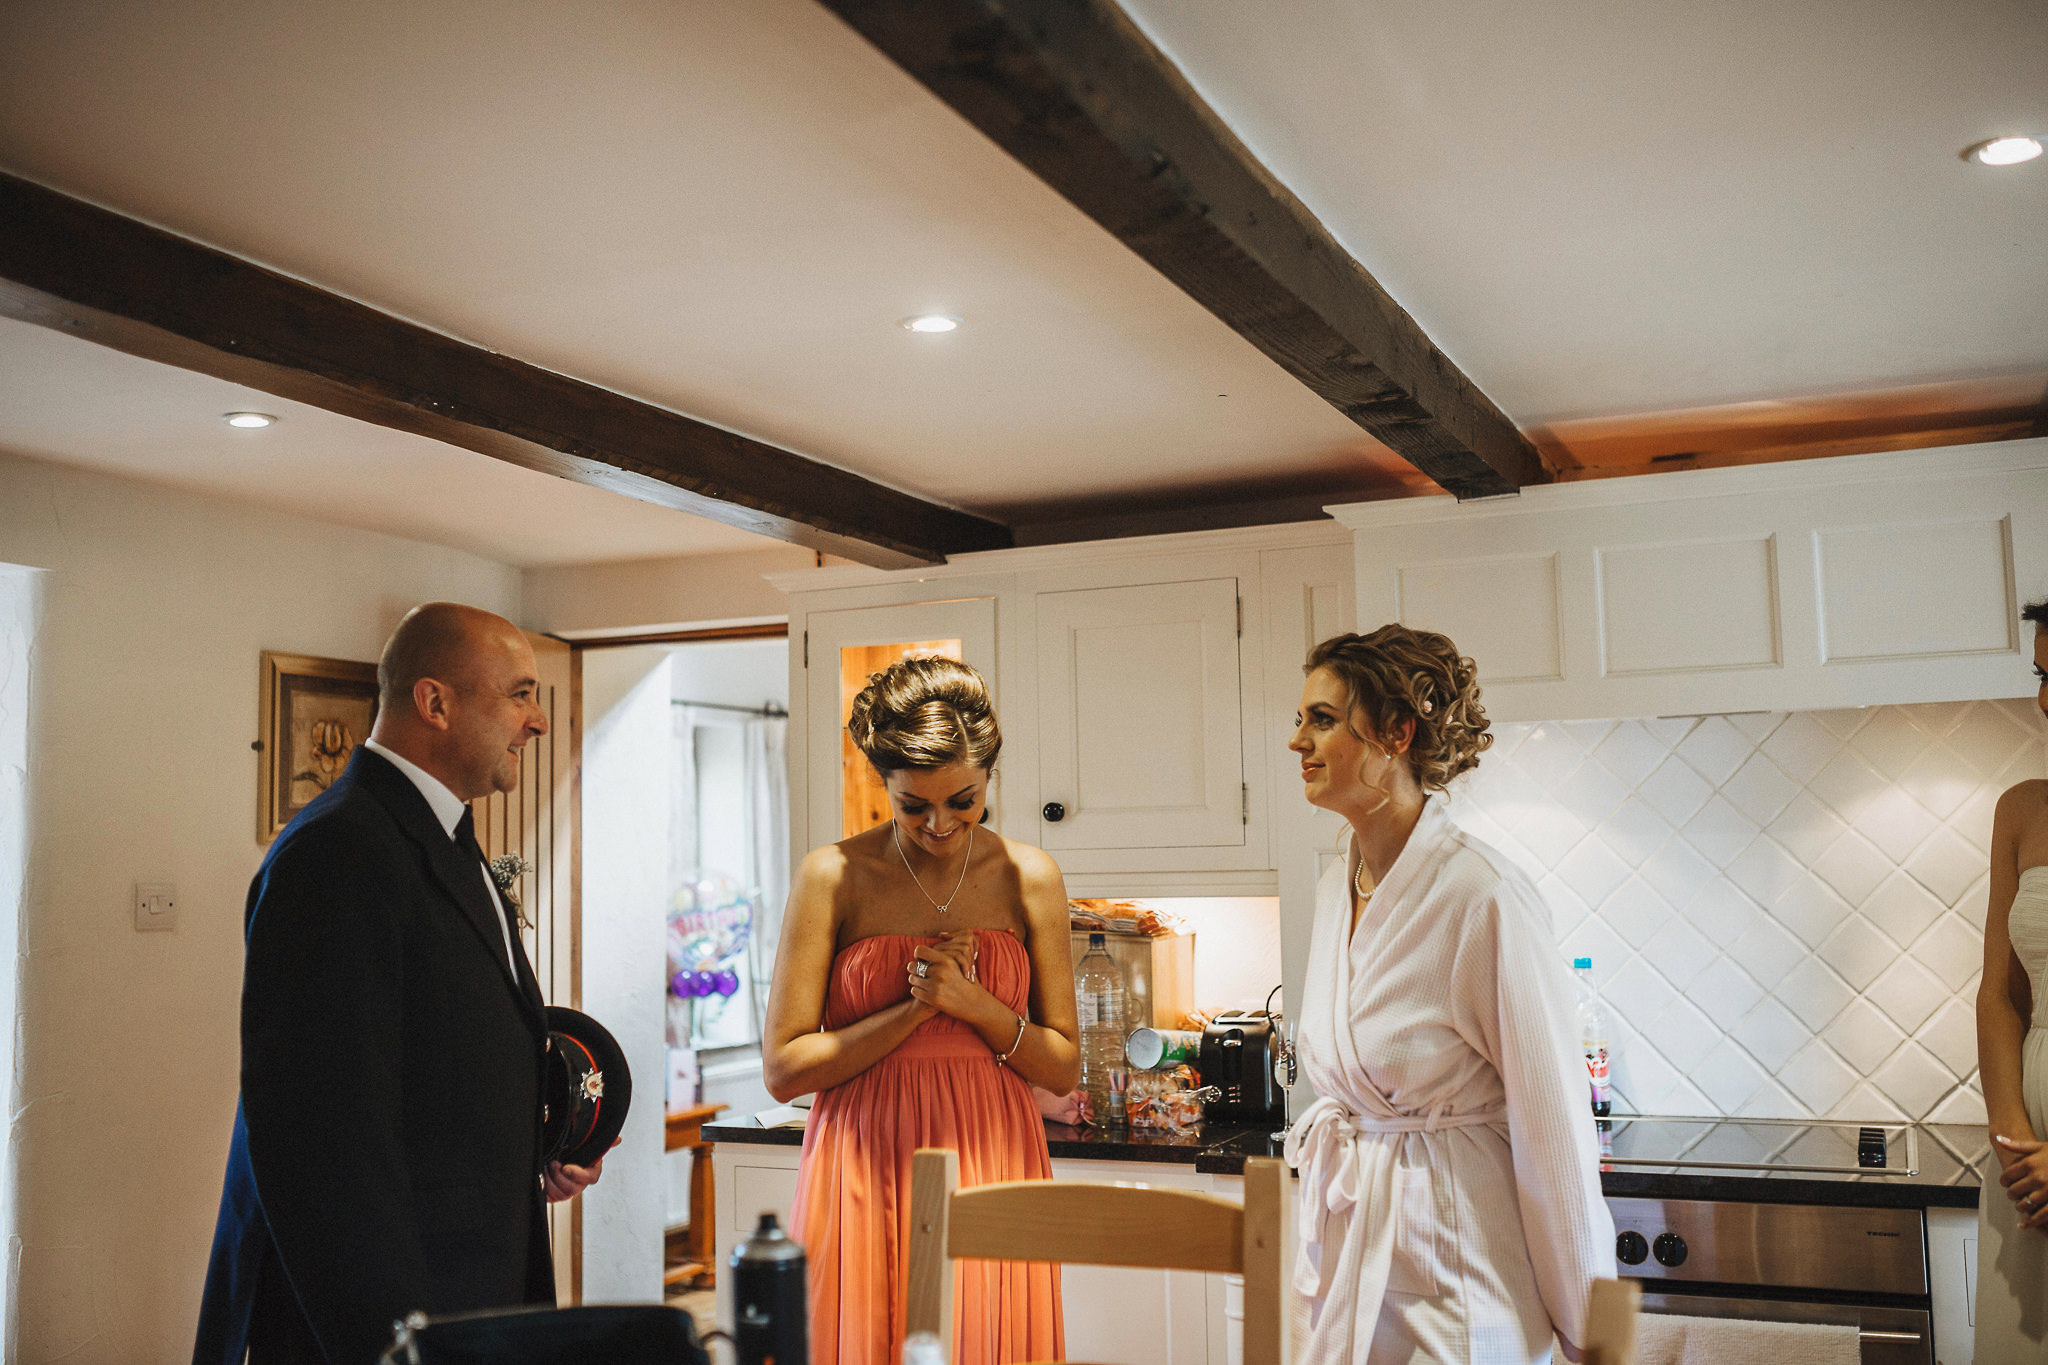 paul-marbrook-best-wedding-photographer-north-wales-132141